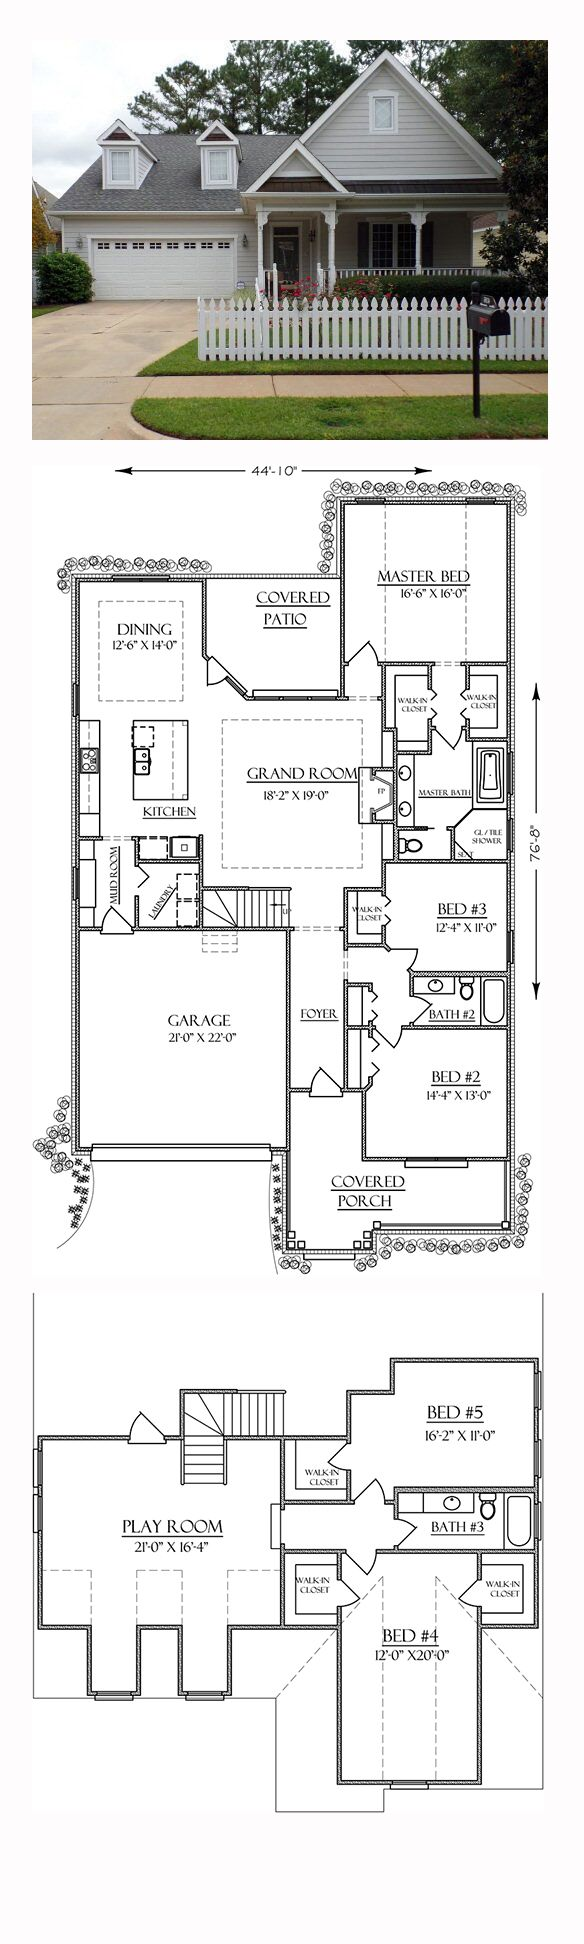 46 best New House Plans images on Pinterest